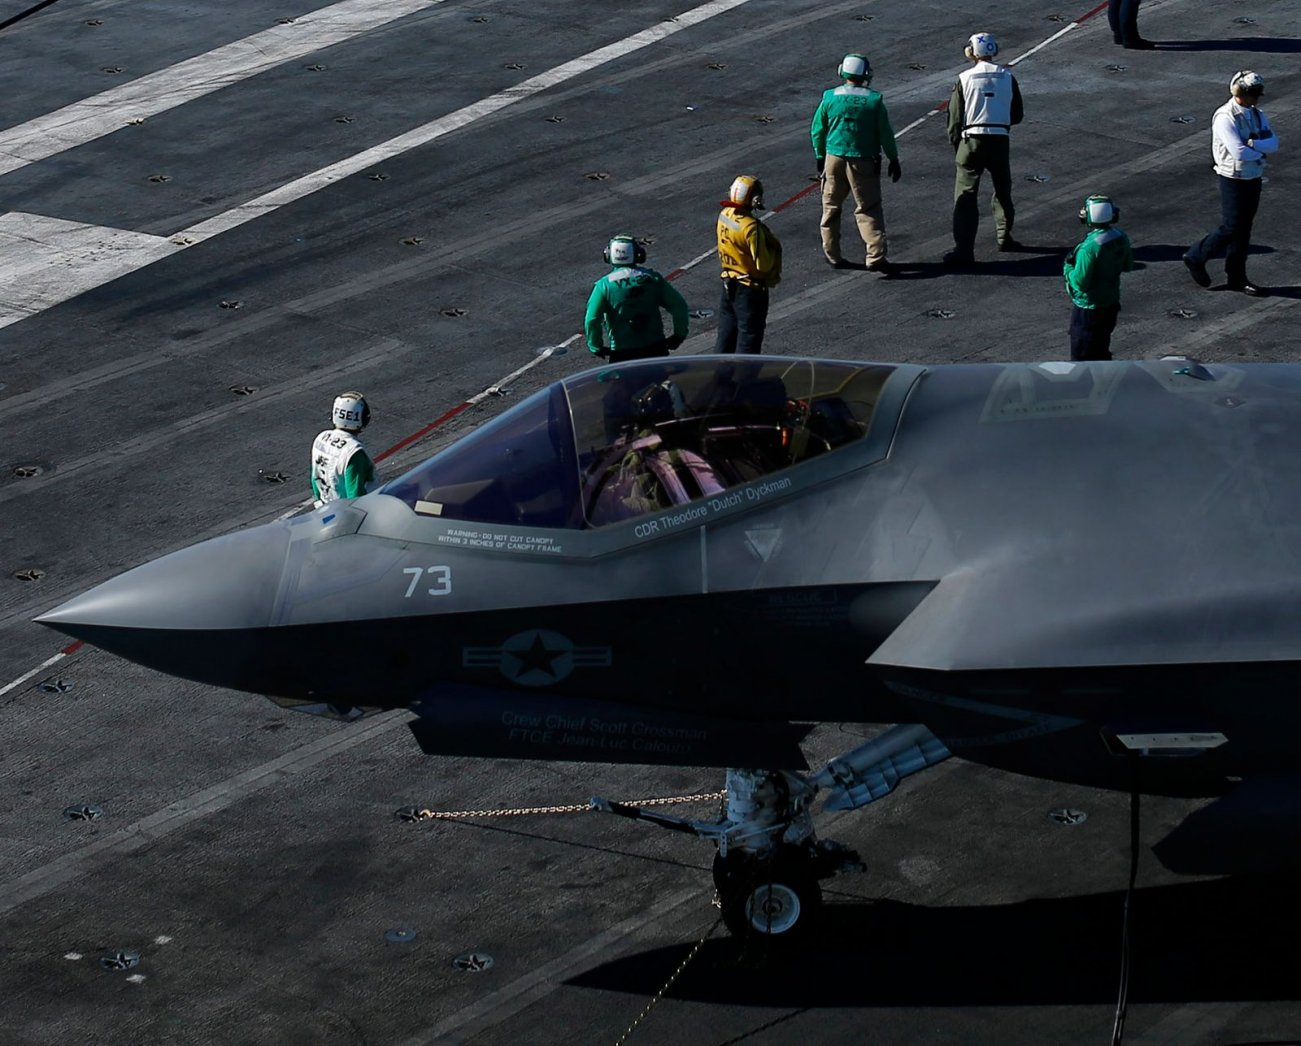 A-12 Avenger Stealth Fighter: The Plane the Navy Said No To